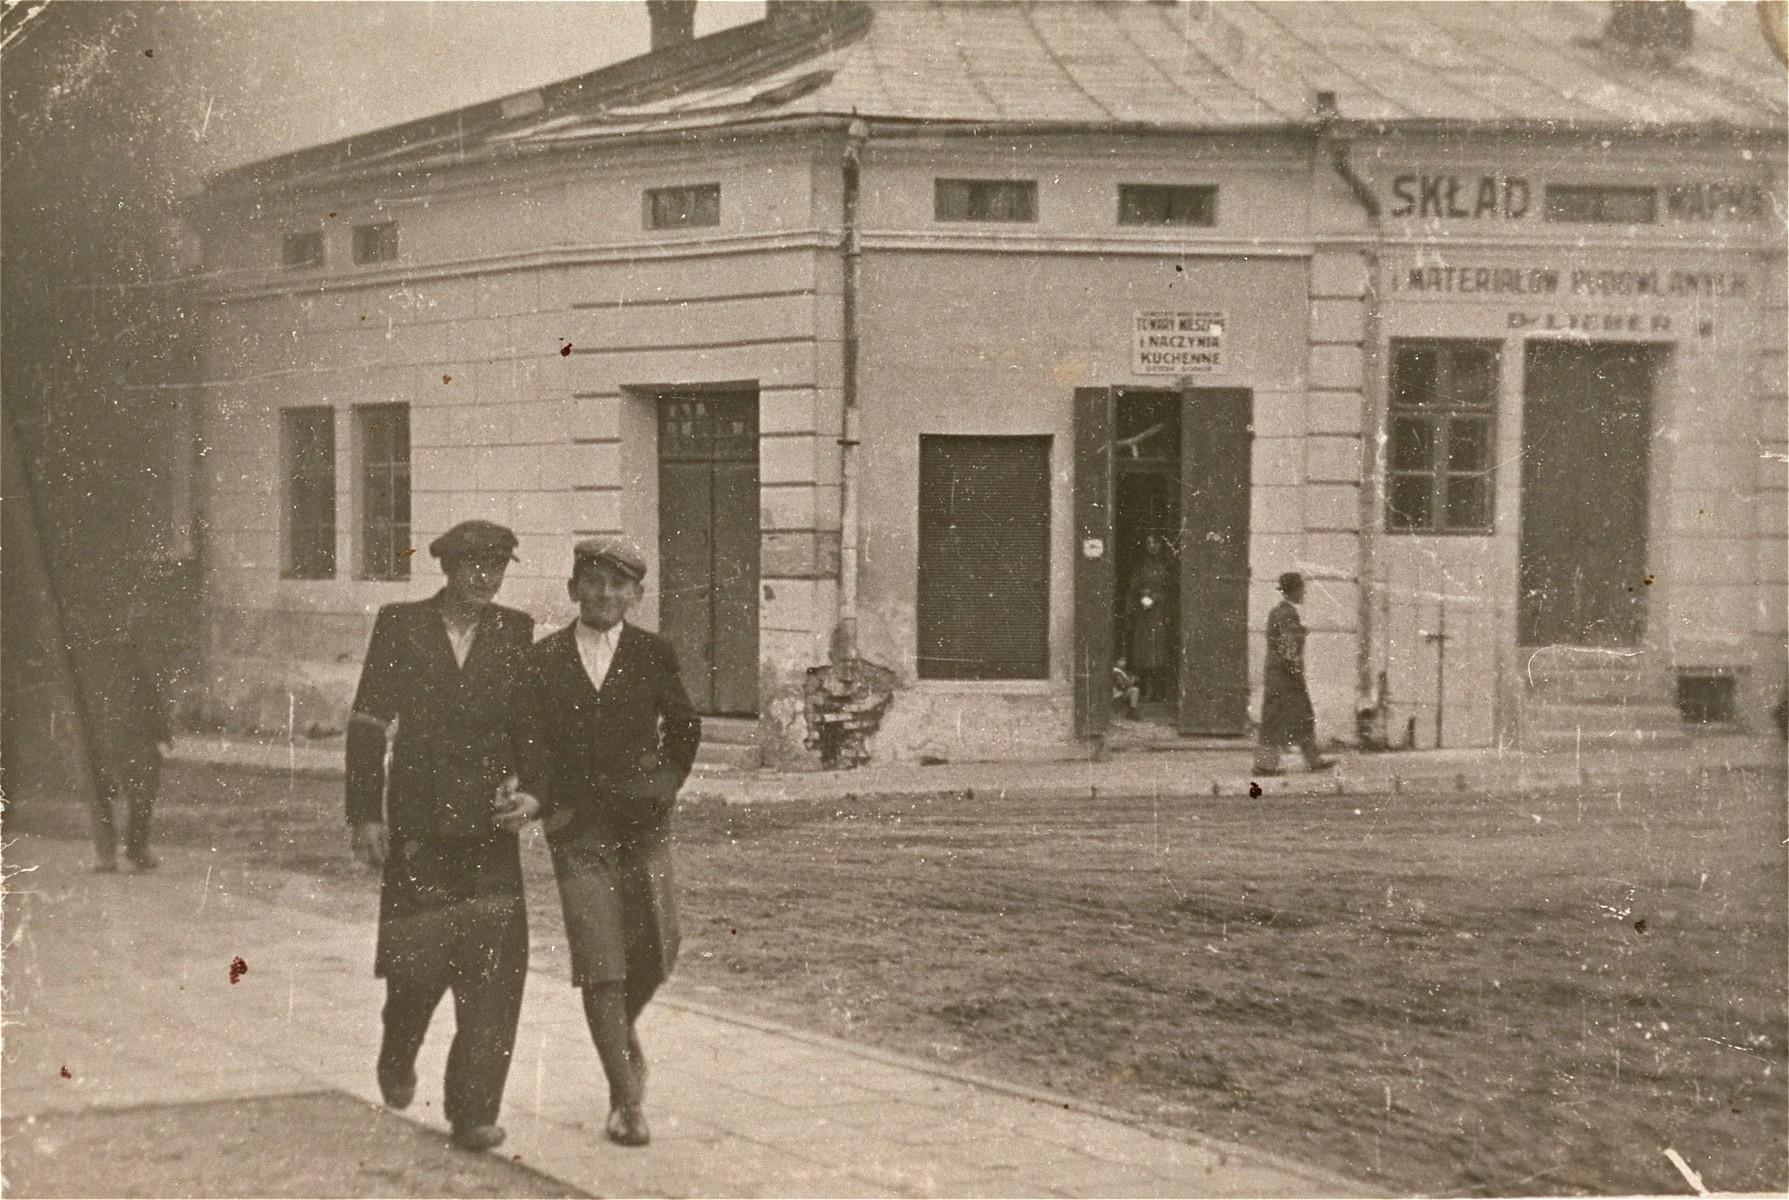 Two friends walk along a street in the Kolbuszowa ghetto.  Pictured is Manius Notowicz (right) with a friend named Grinstein in front of Lieber's building supply store.